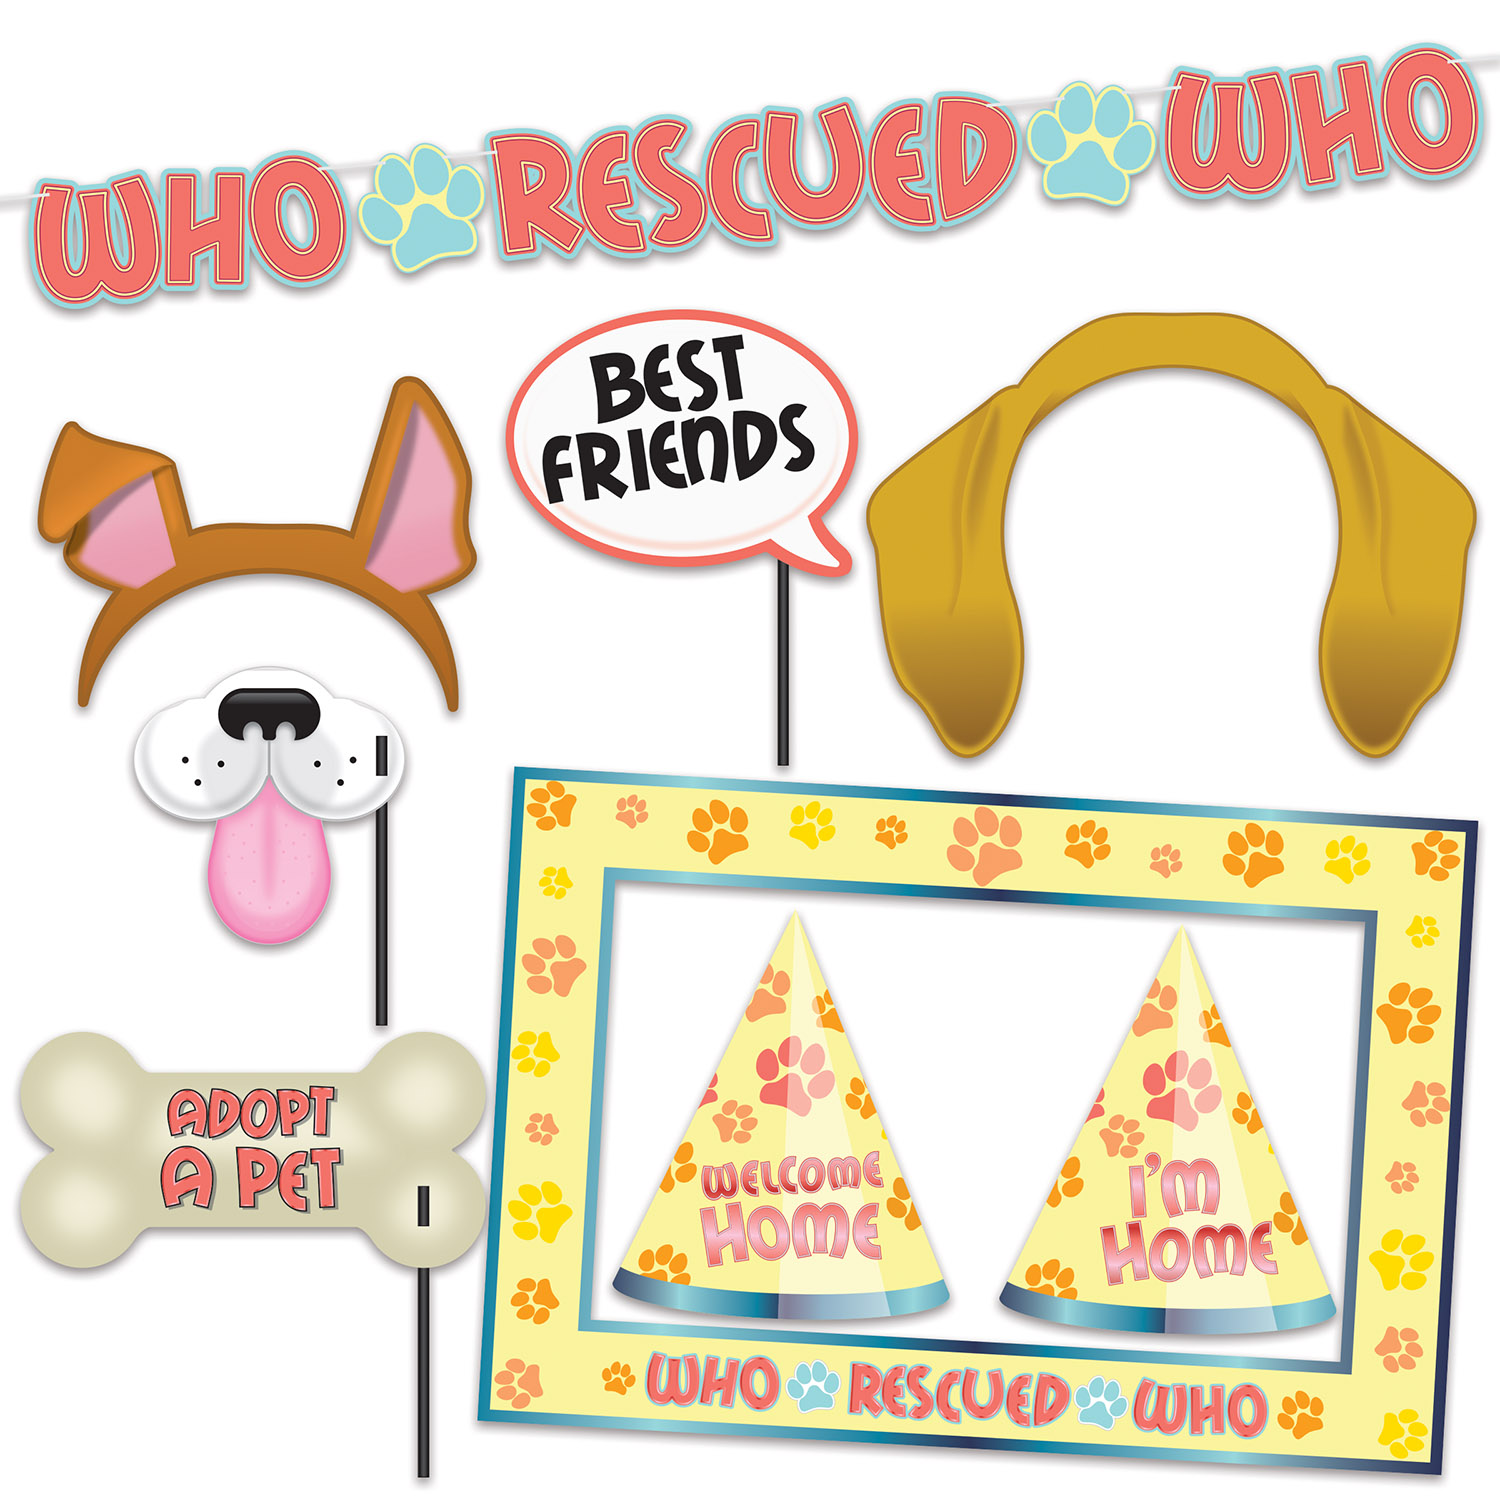 WHO RESCUED WHO PARTY KIT (12) image